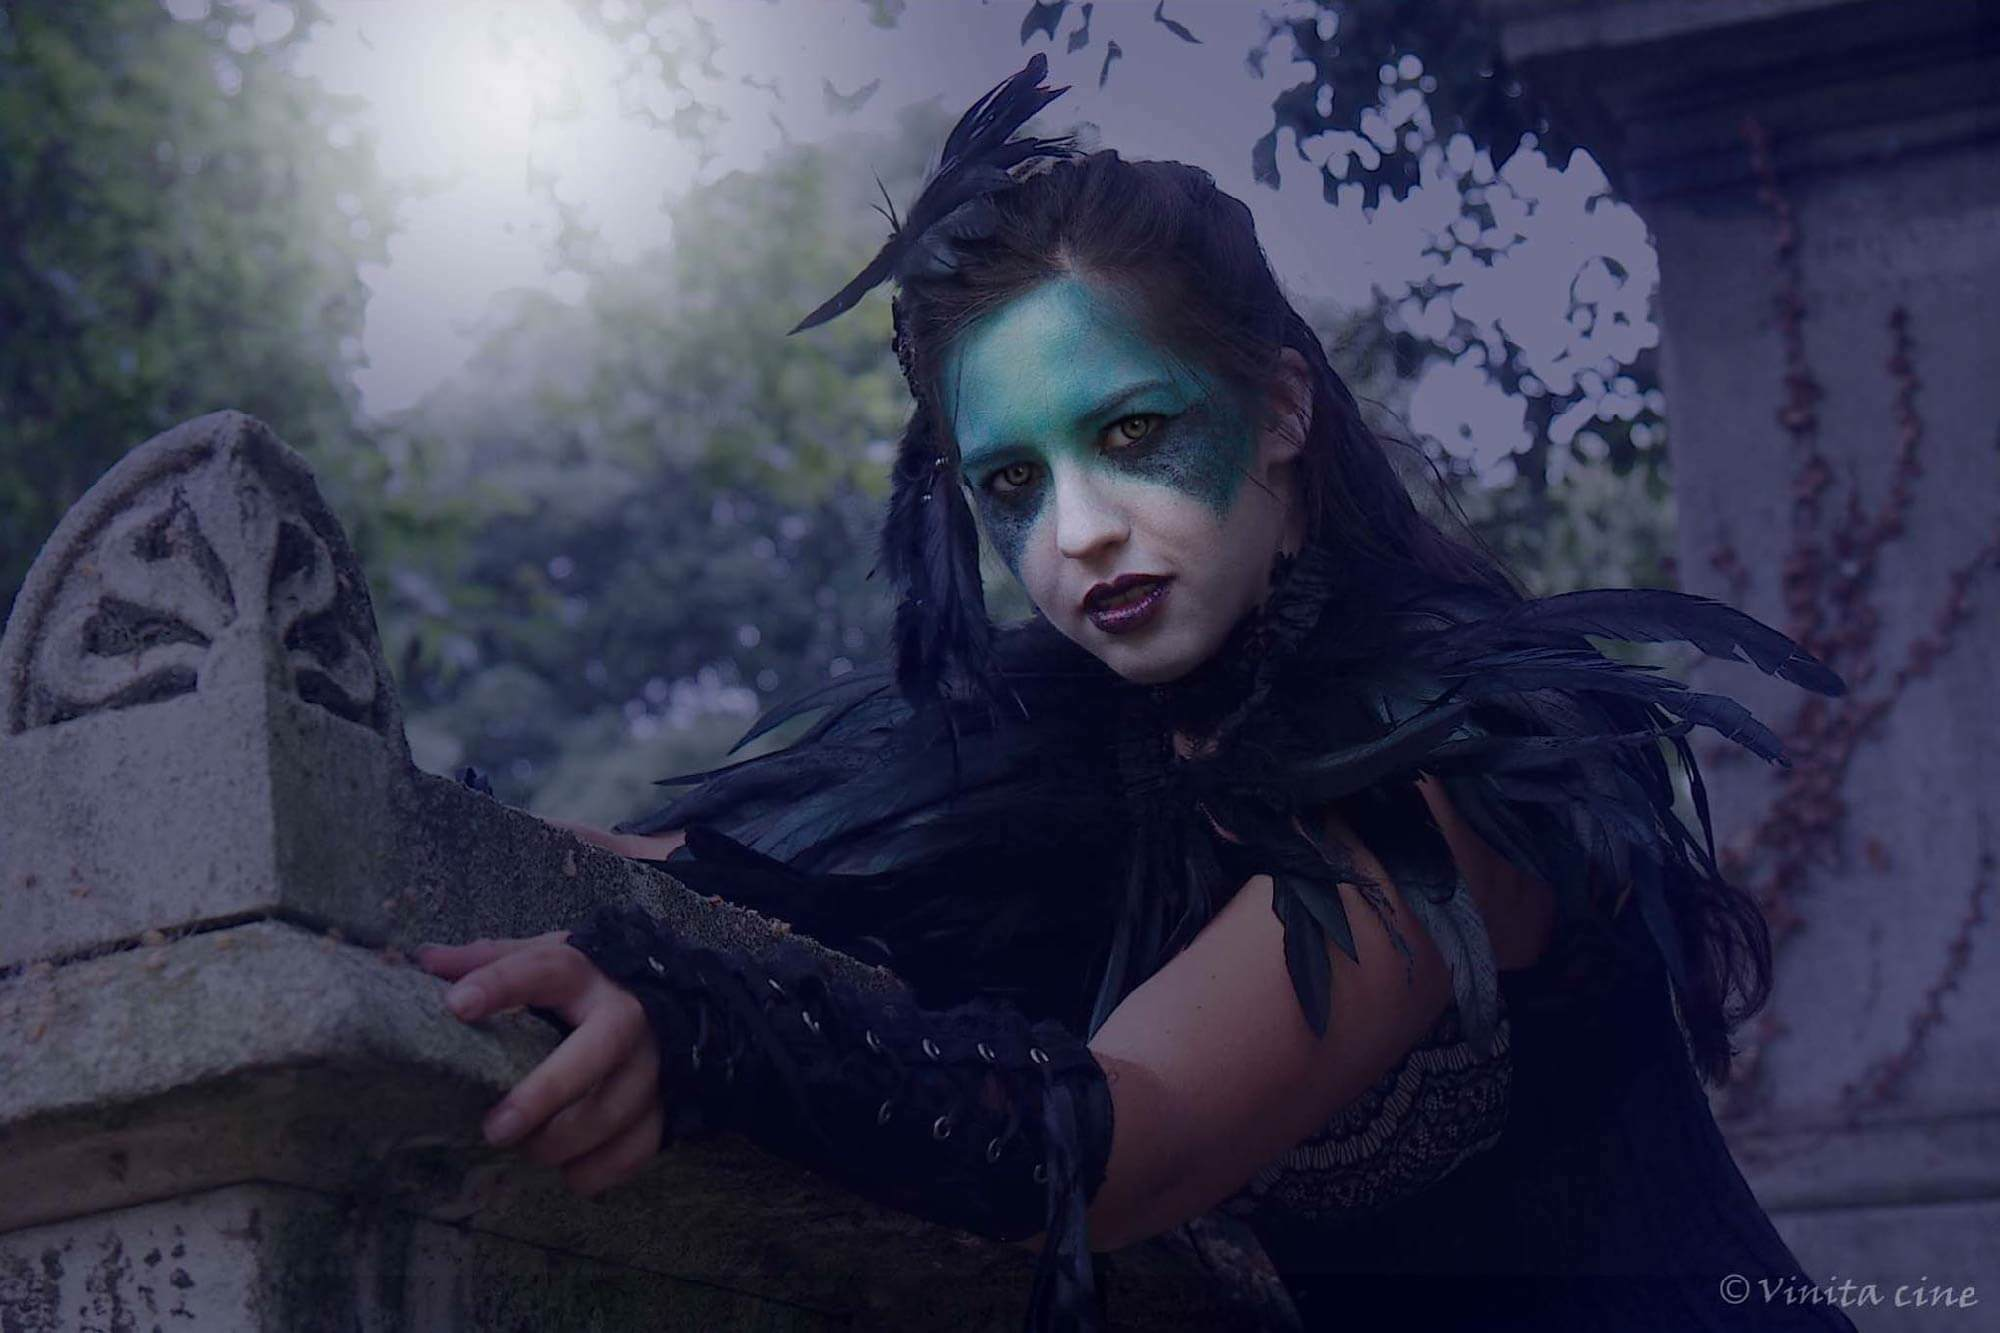 Fantasy makeup. Gothic girl poses for photo.